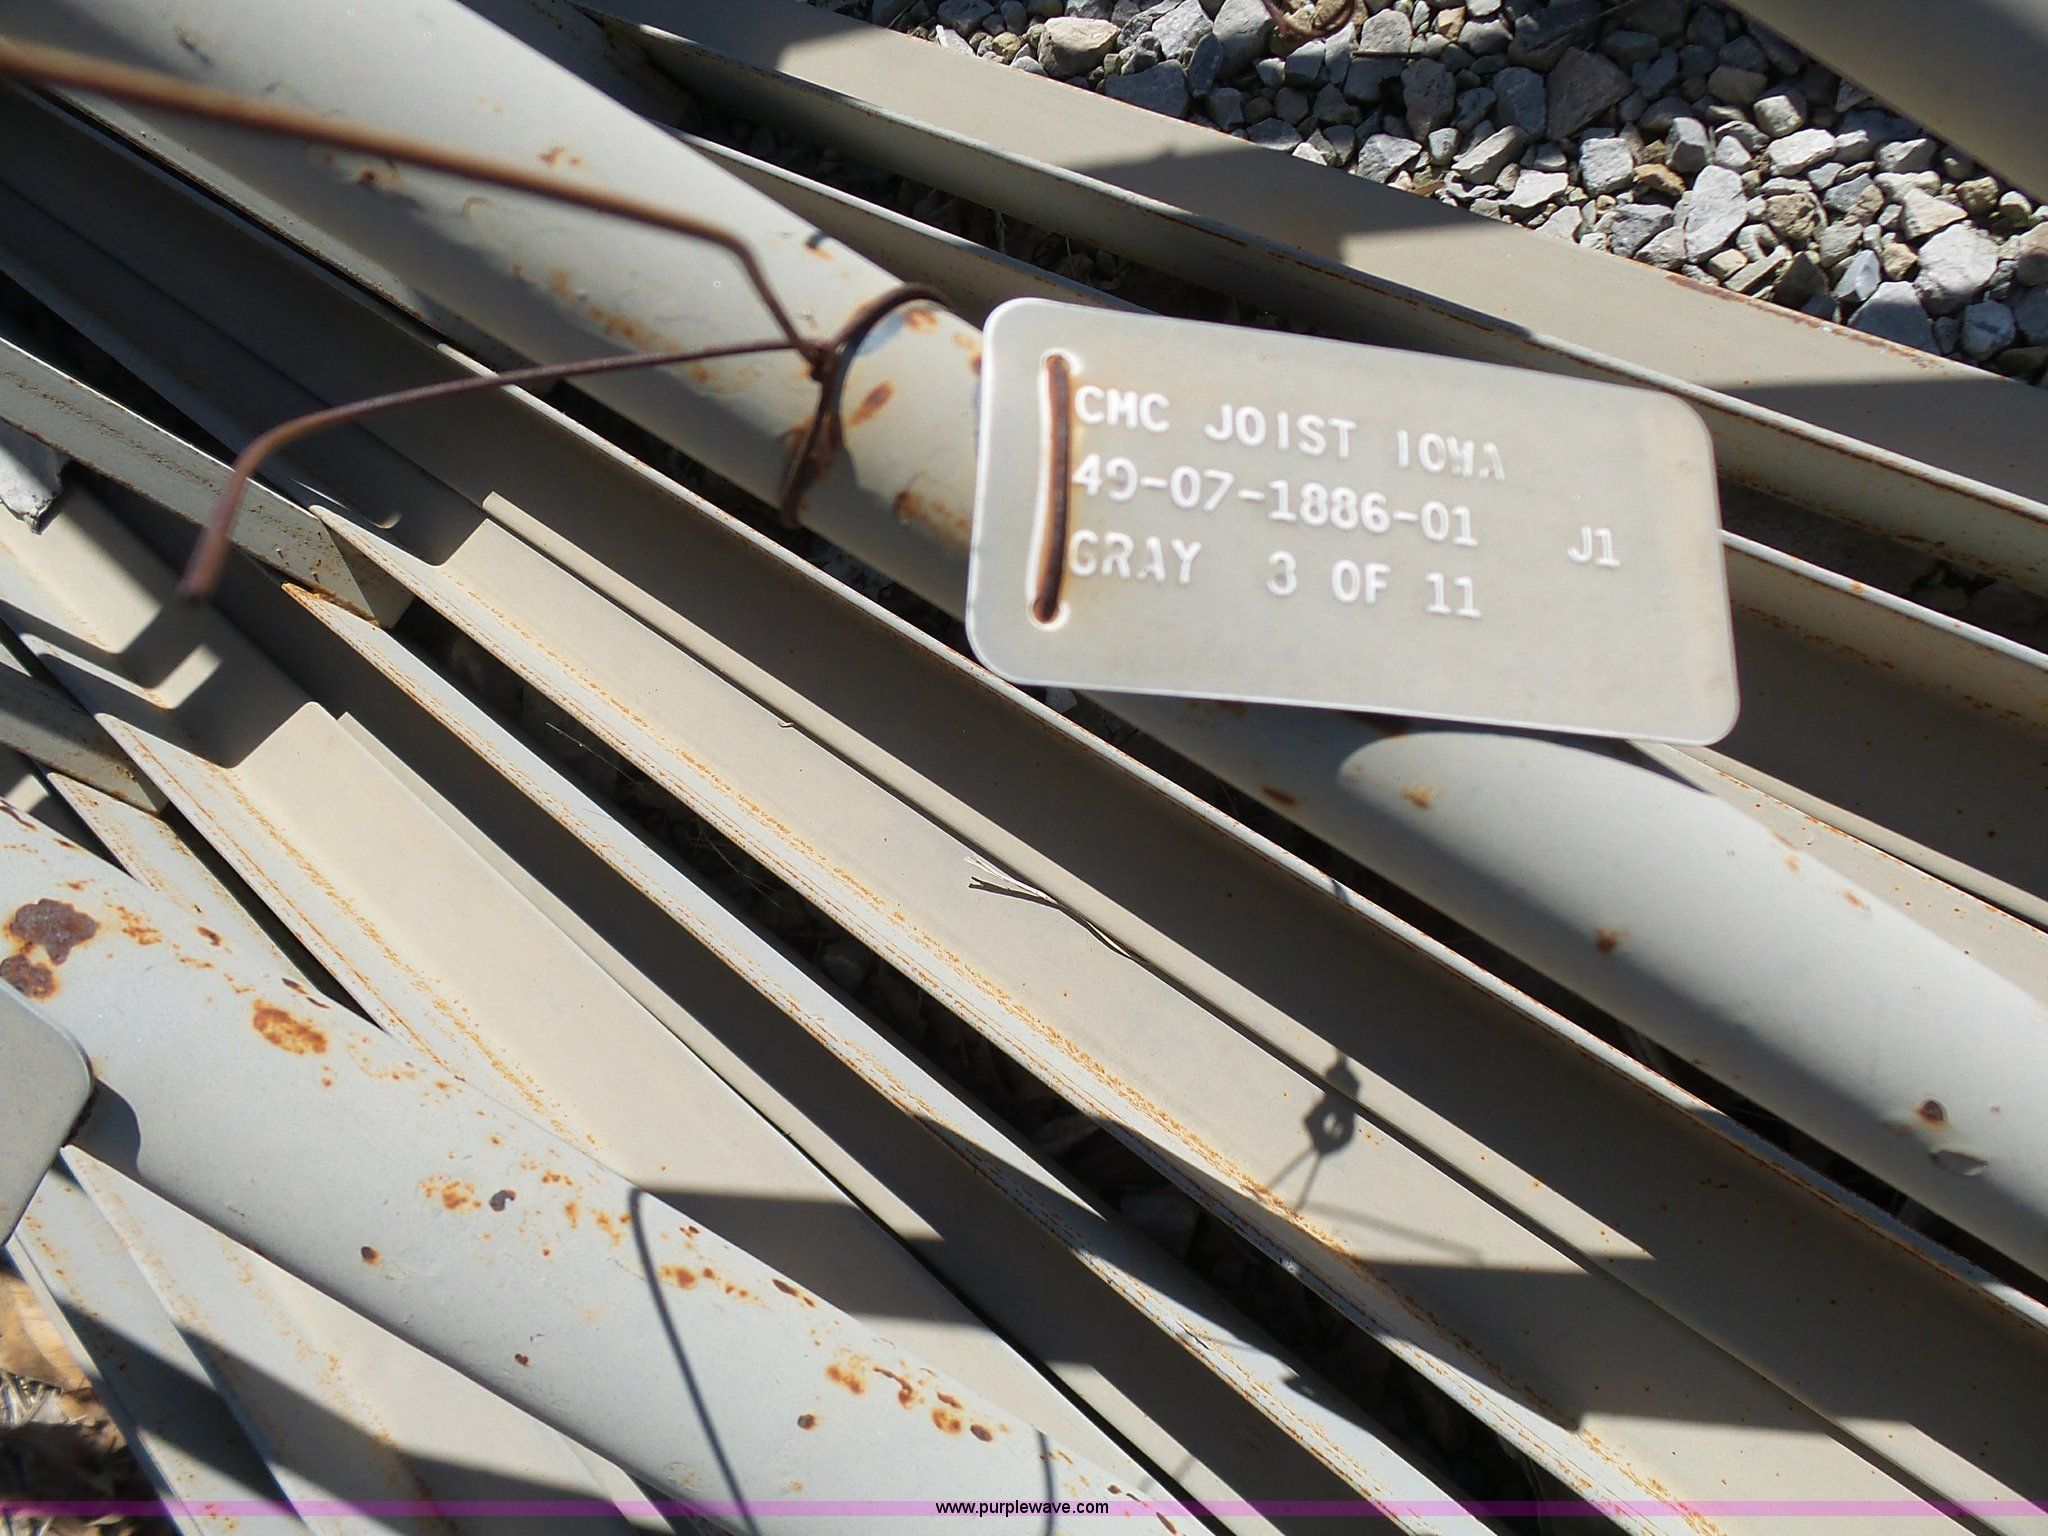 16) CMC Joist steel trusses | Item L7032 | SOLD! May 12 Con